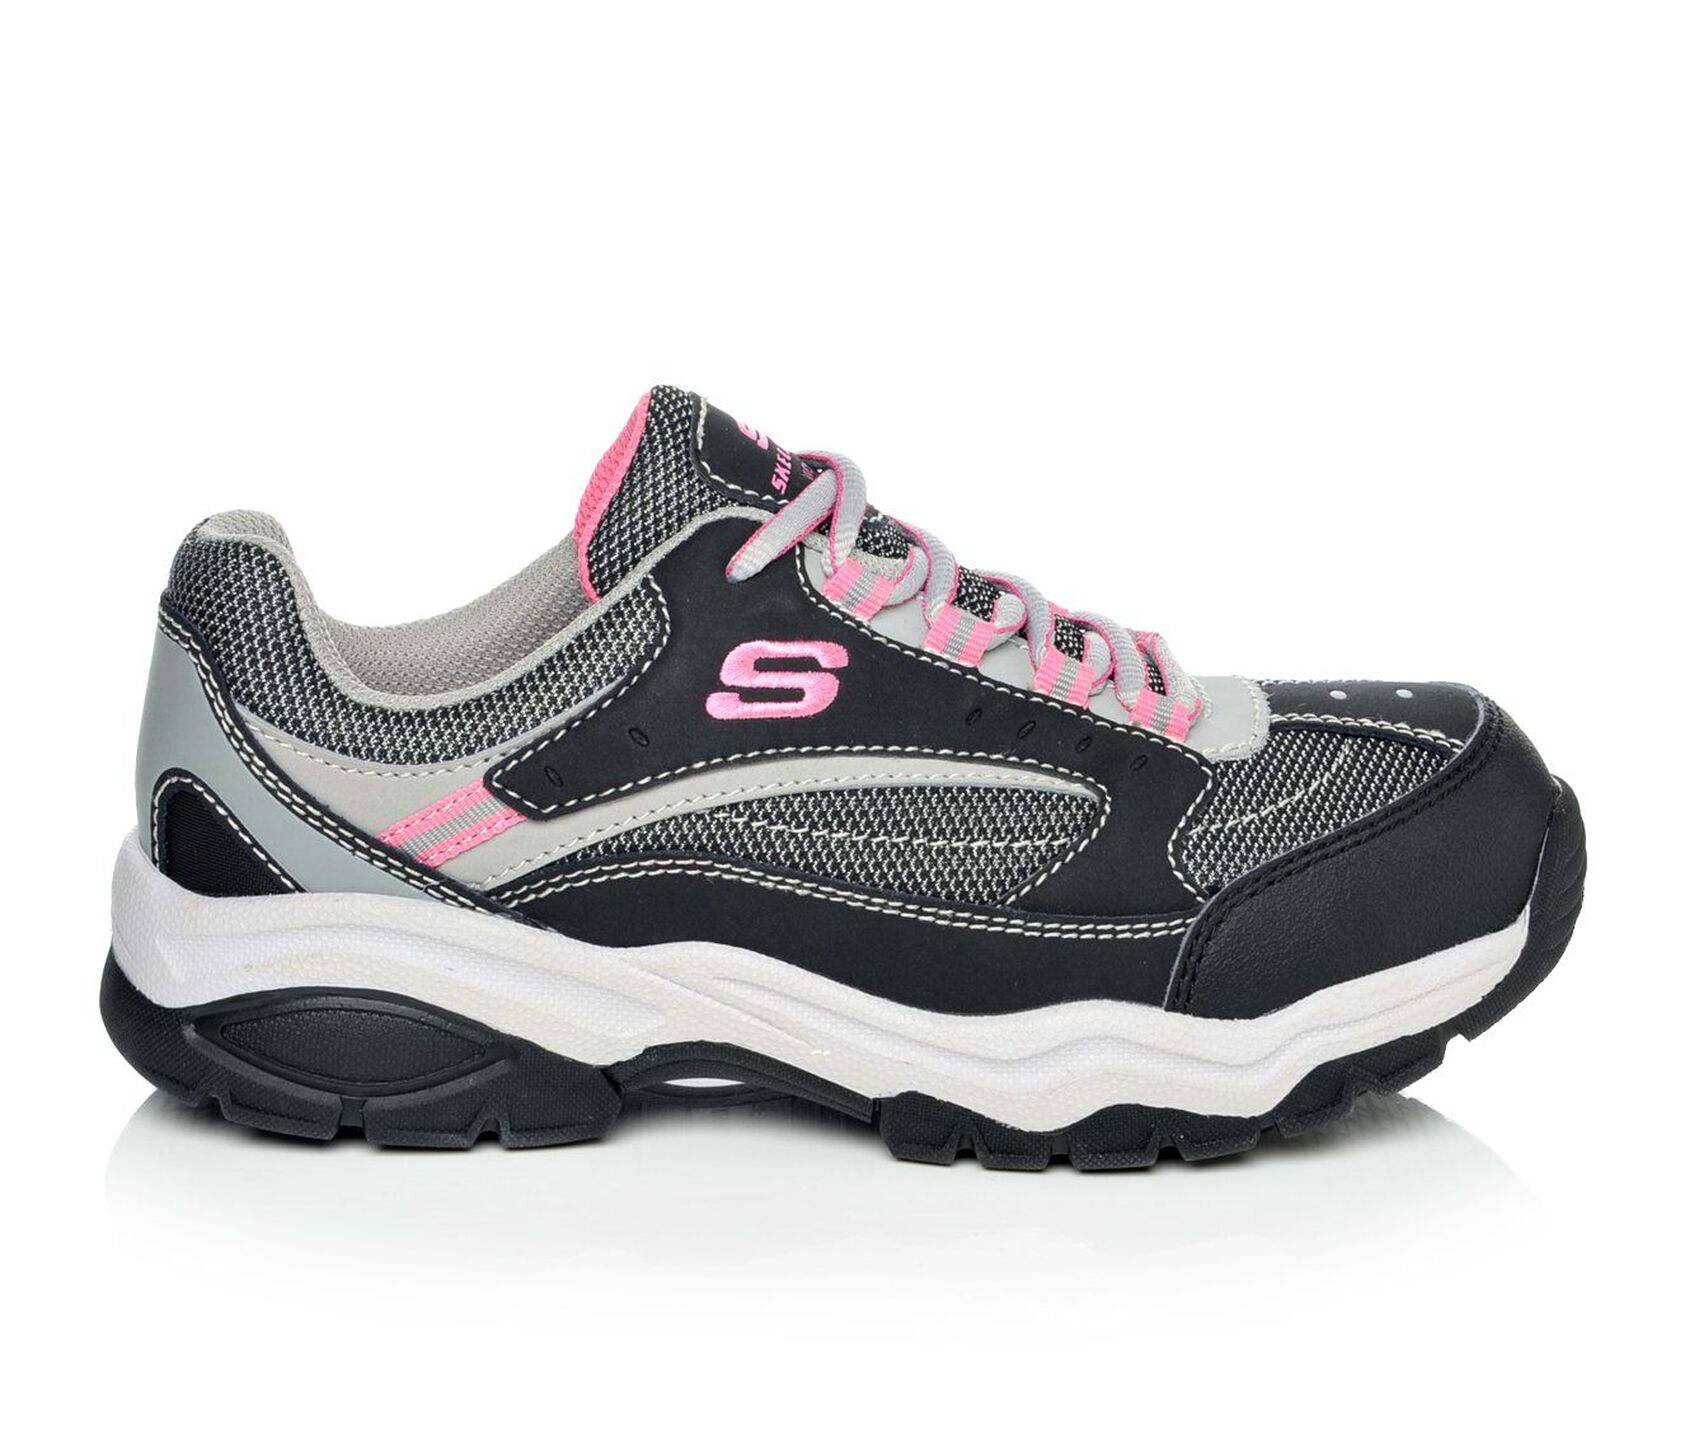 Womens Shoes Toe Styles